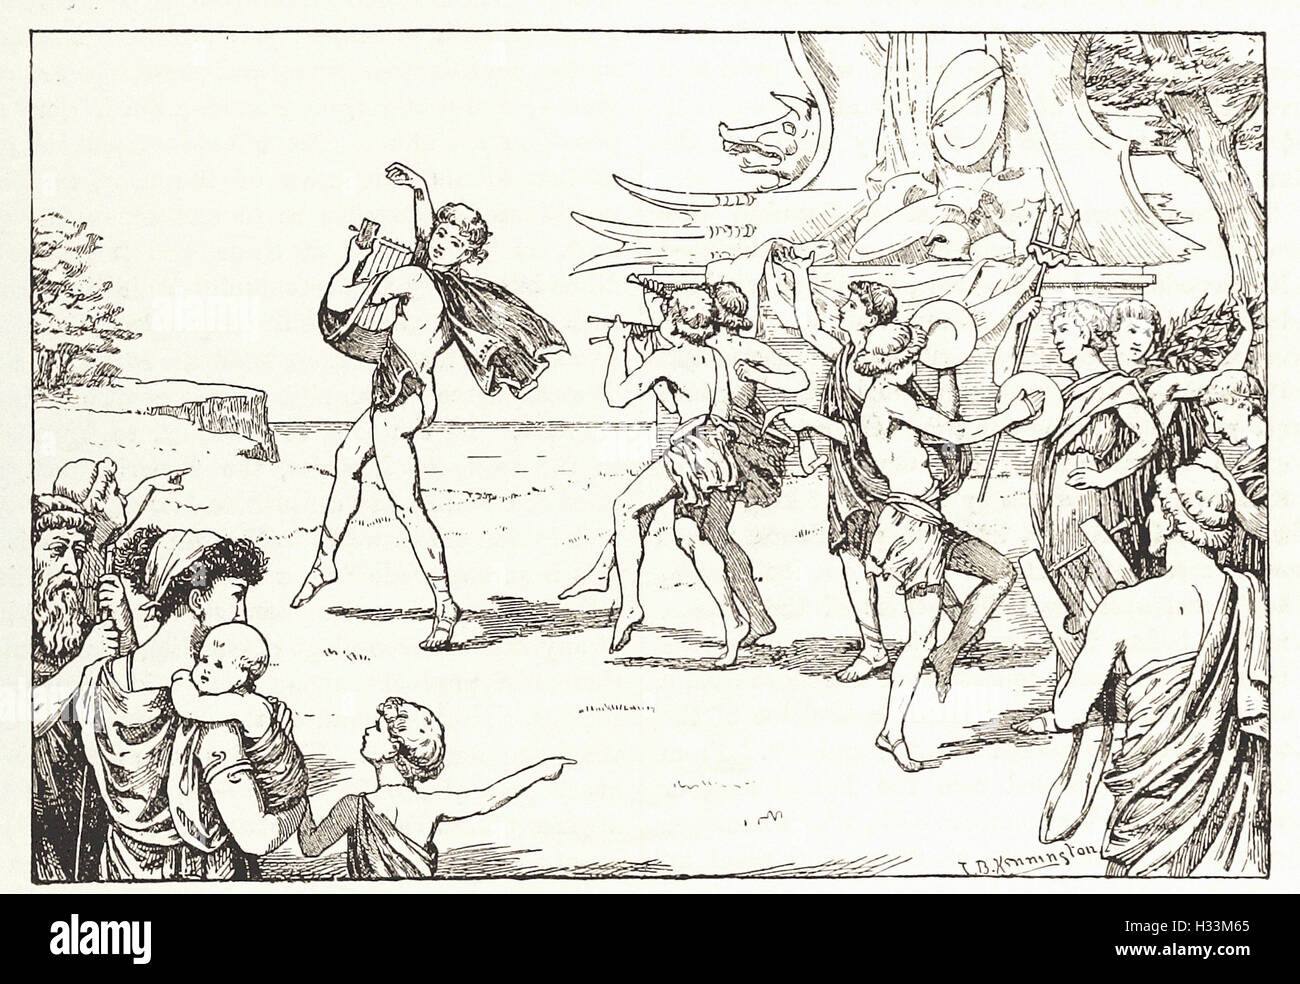 SOPHOCLES LEADING THE CHORUS OF YOUTHS - from 'Cassell's Illustrated Universal History' - 1882 - Stock Image